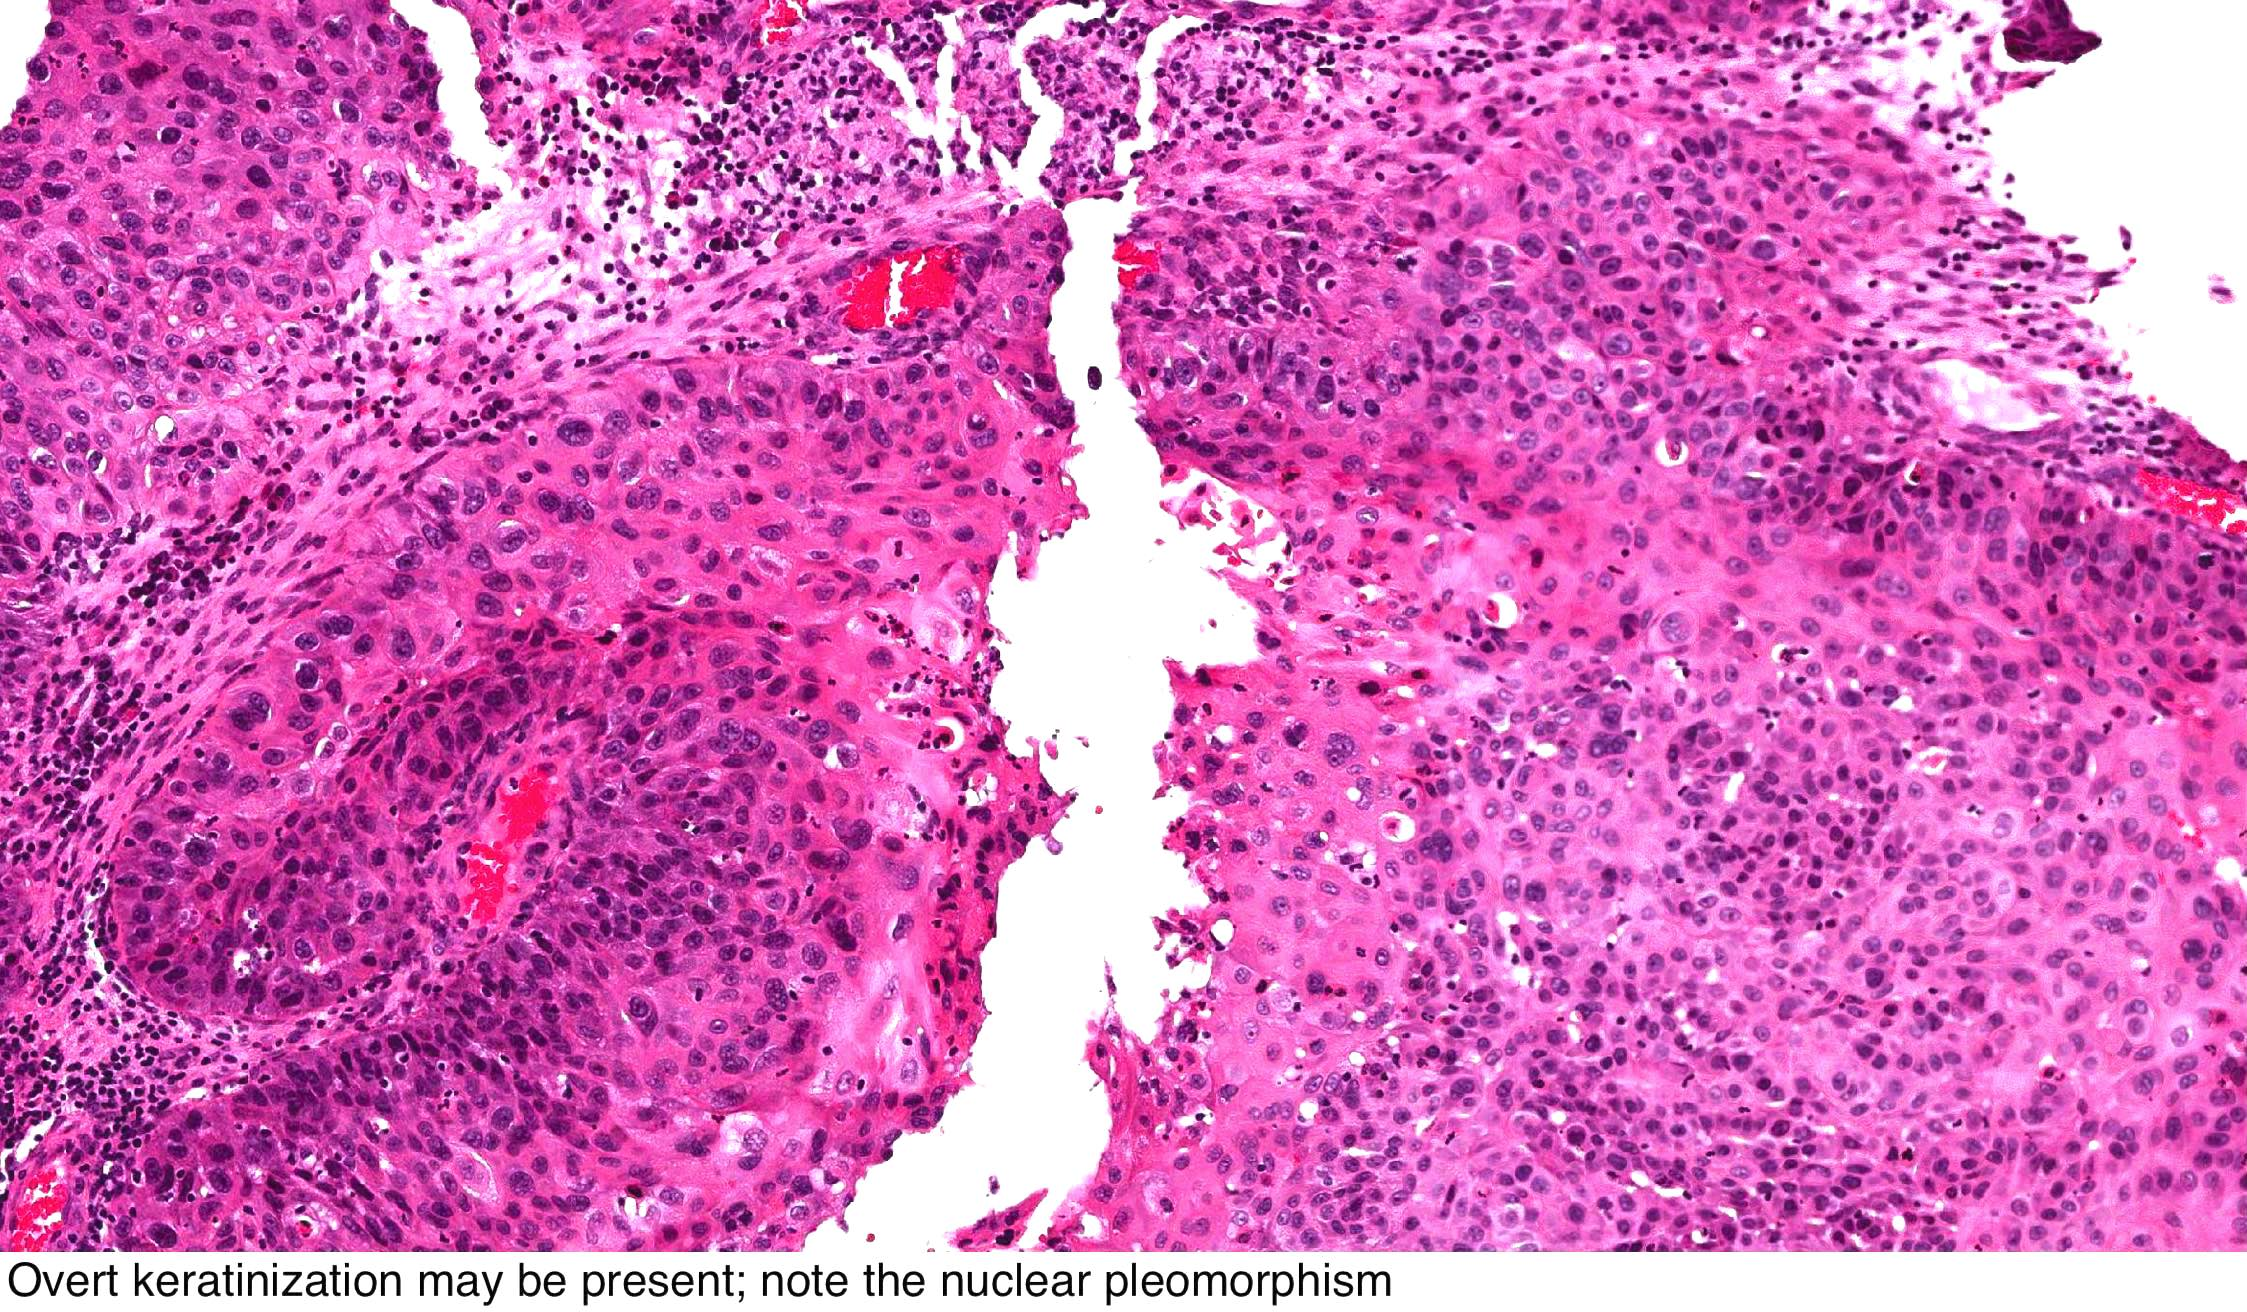 inverted papilloma nasal cavity pathology hpv virus jucken